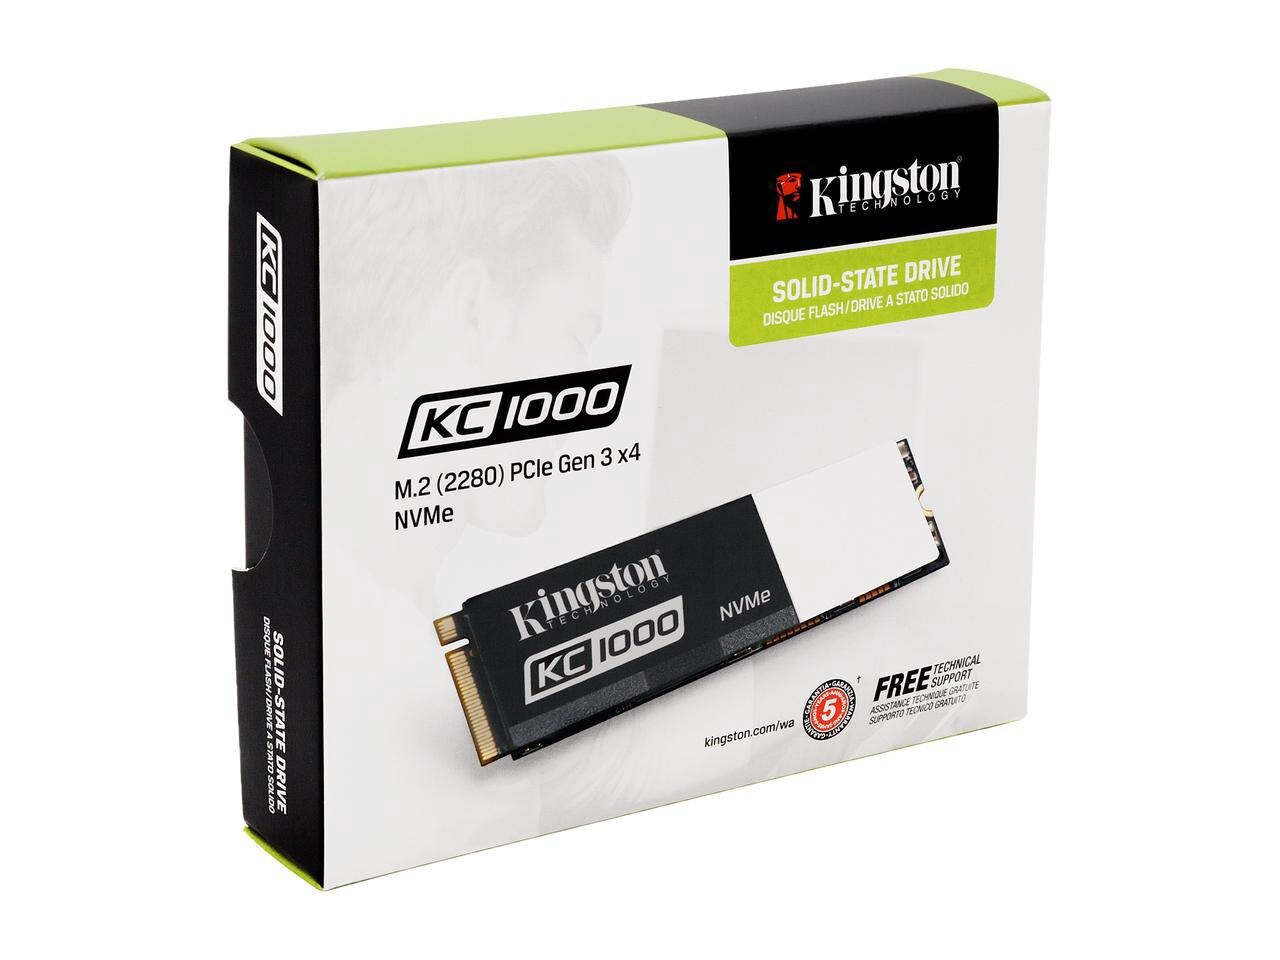 Kingston SSD KC1000 M.2 2280 480GB NVMe PCIe Gen3 x4 PCI-Express 3.0 x4 Lanes MLC Internal Solid State Drive SKC1000/480G 1